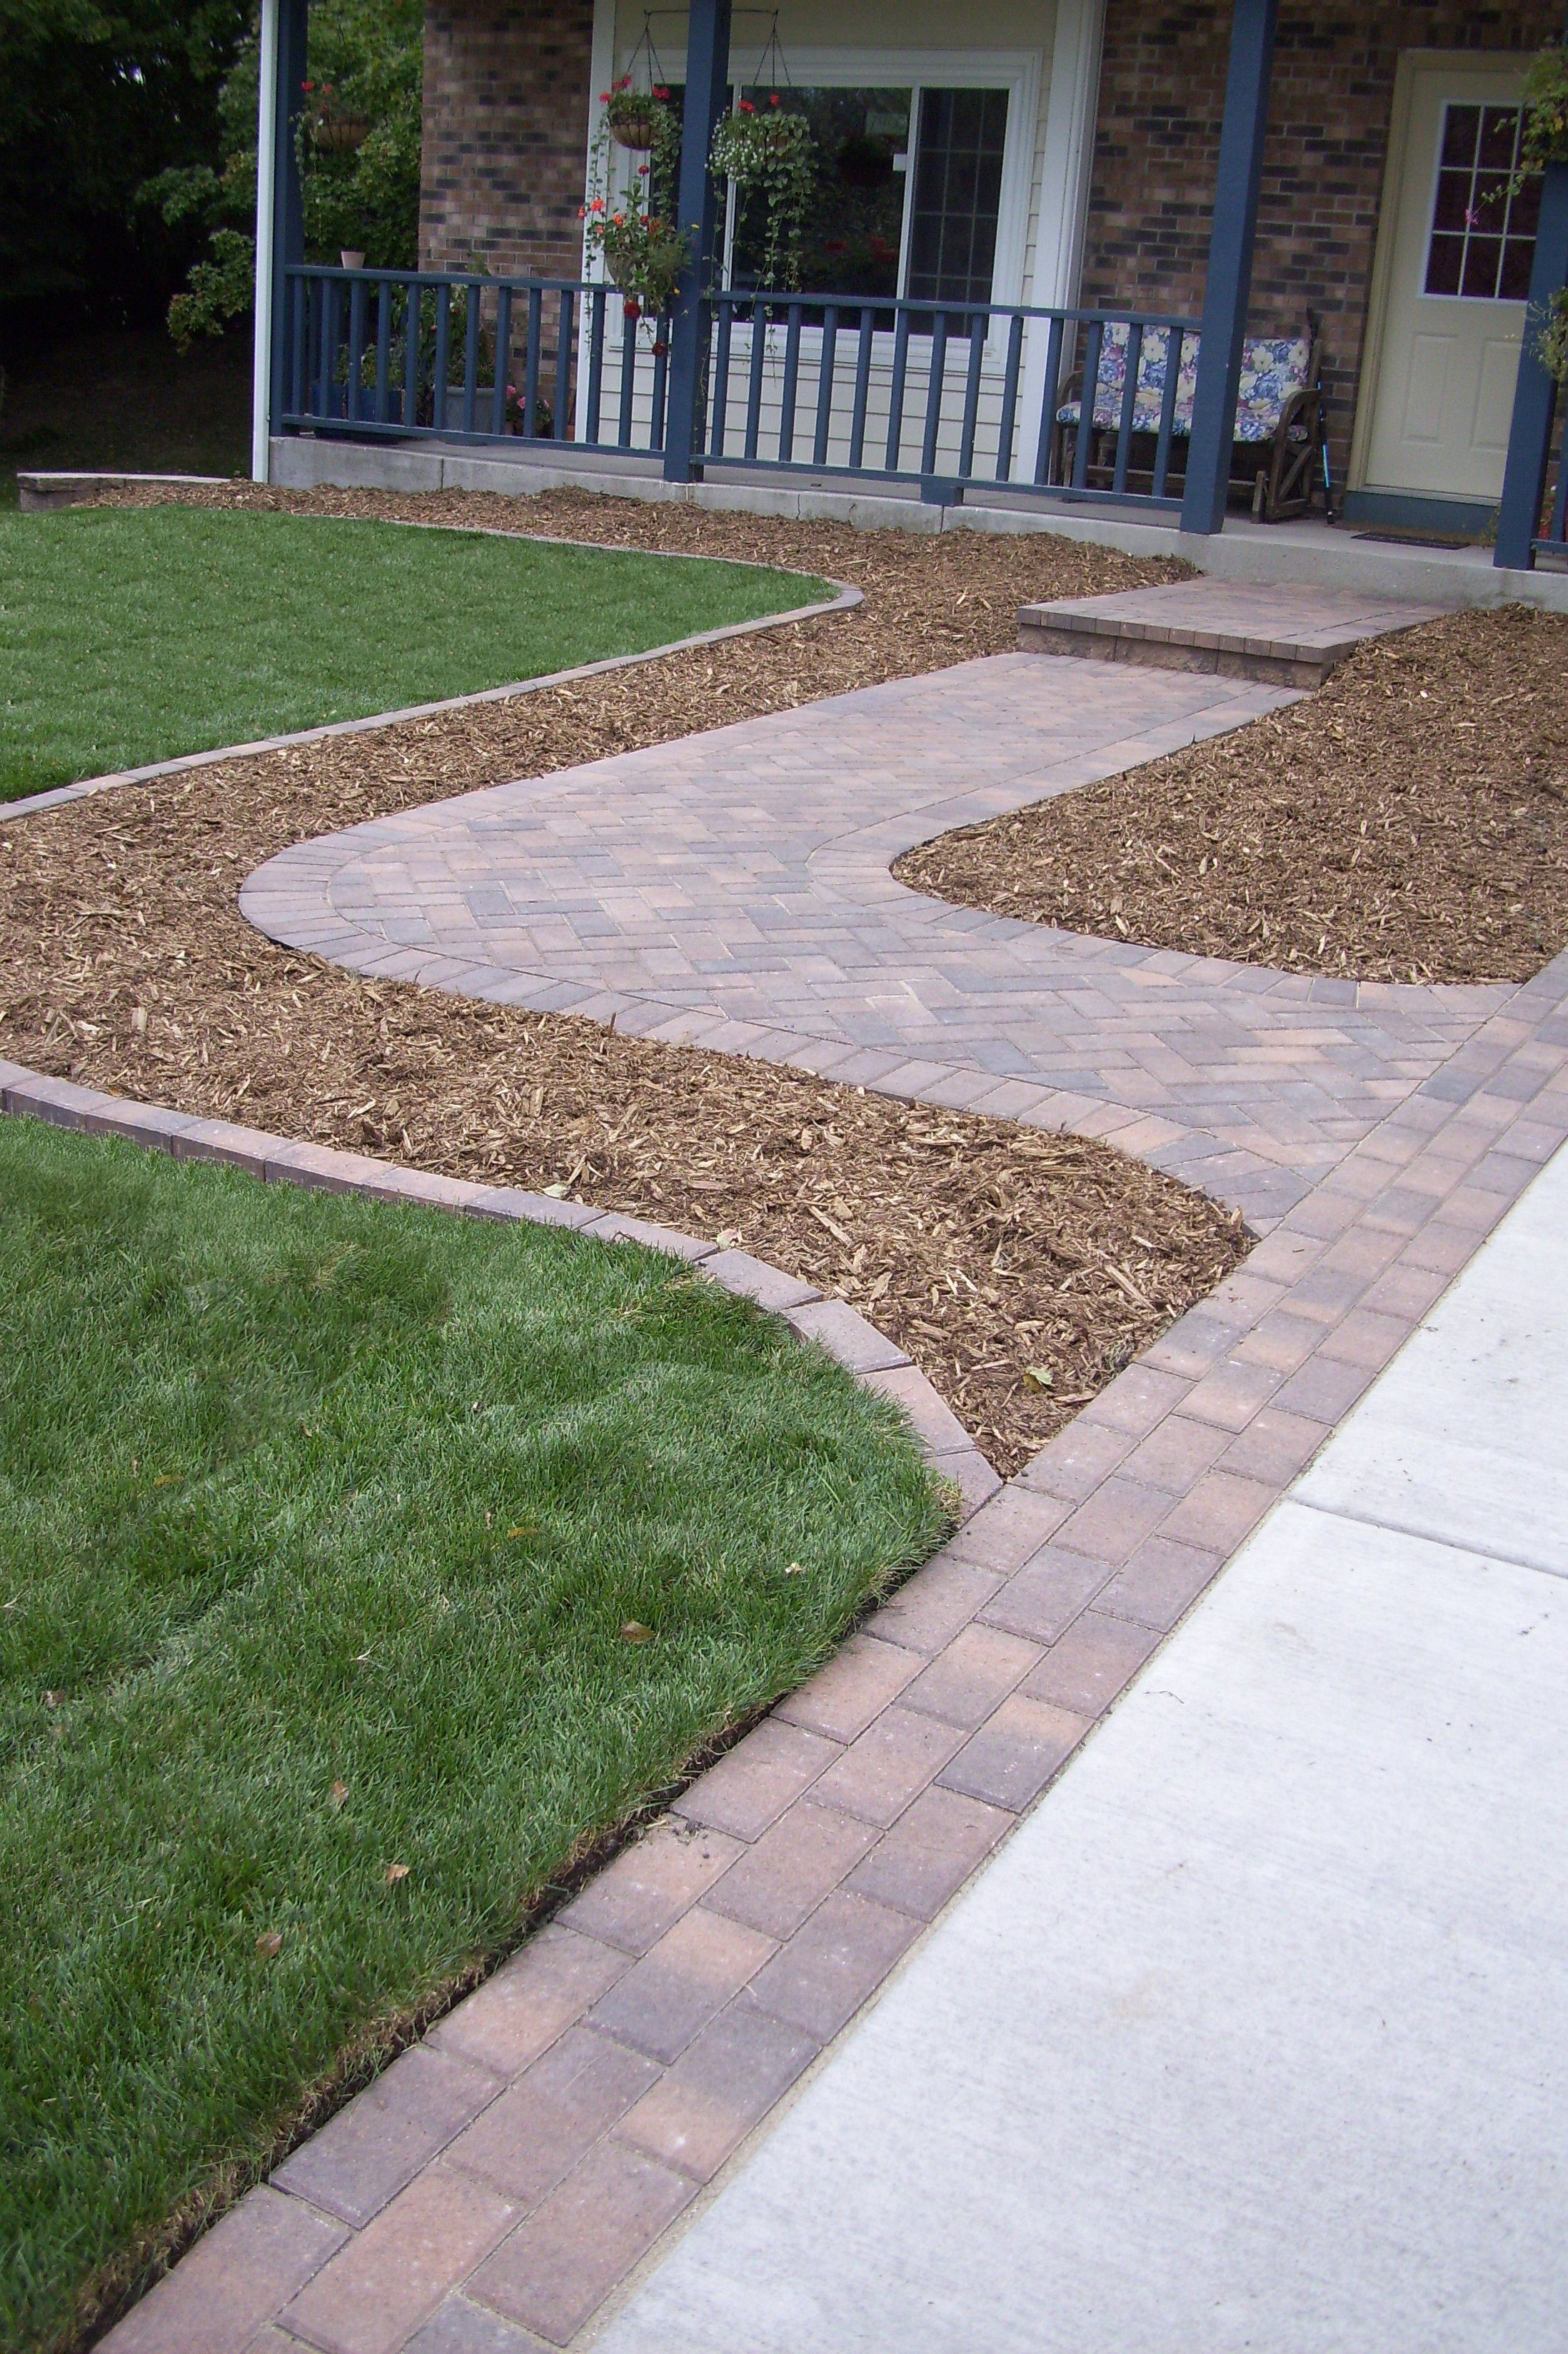 anchor holland paver walkway and border along driveway fieldstone